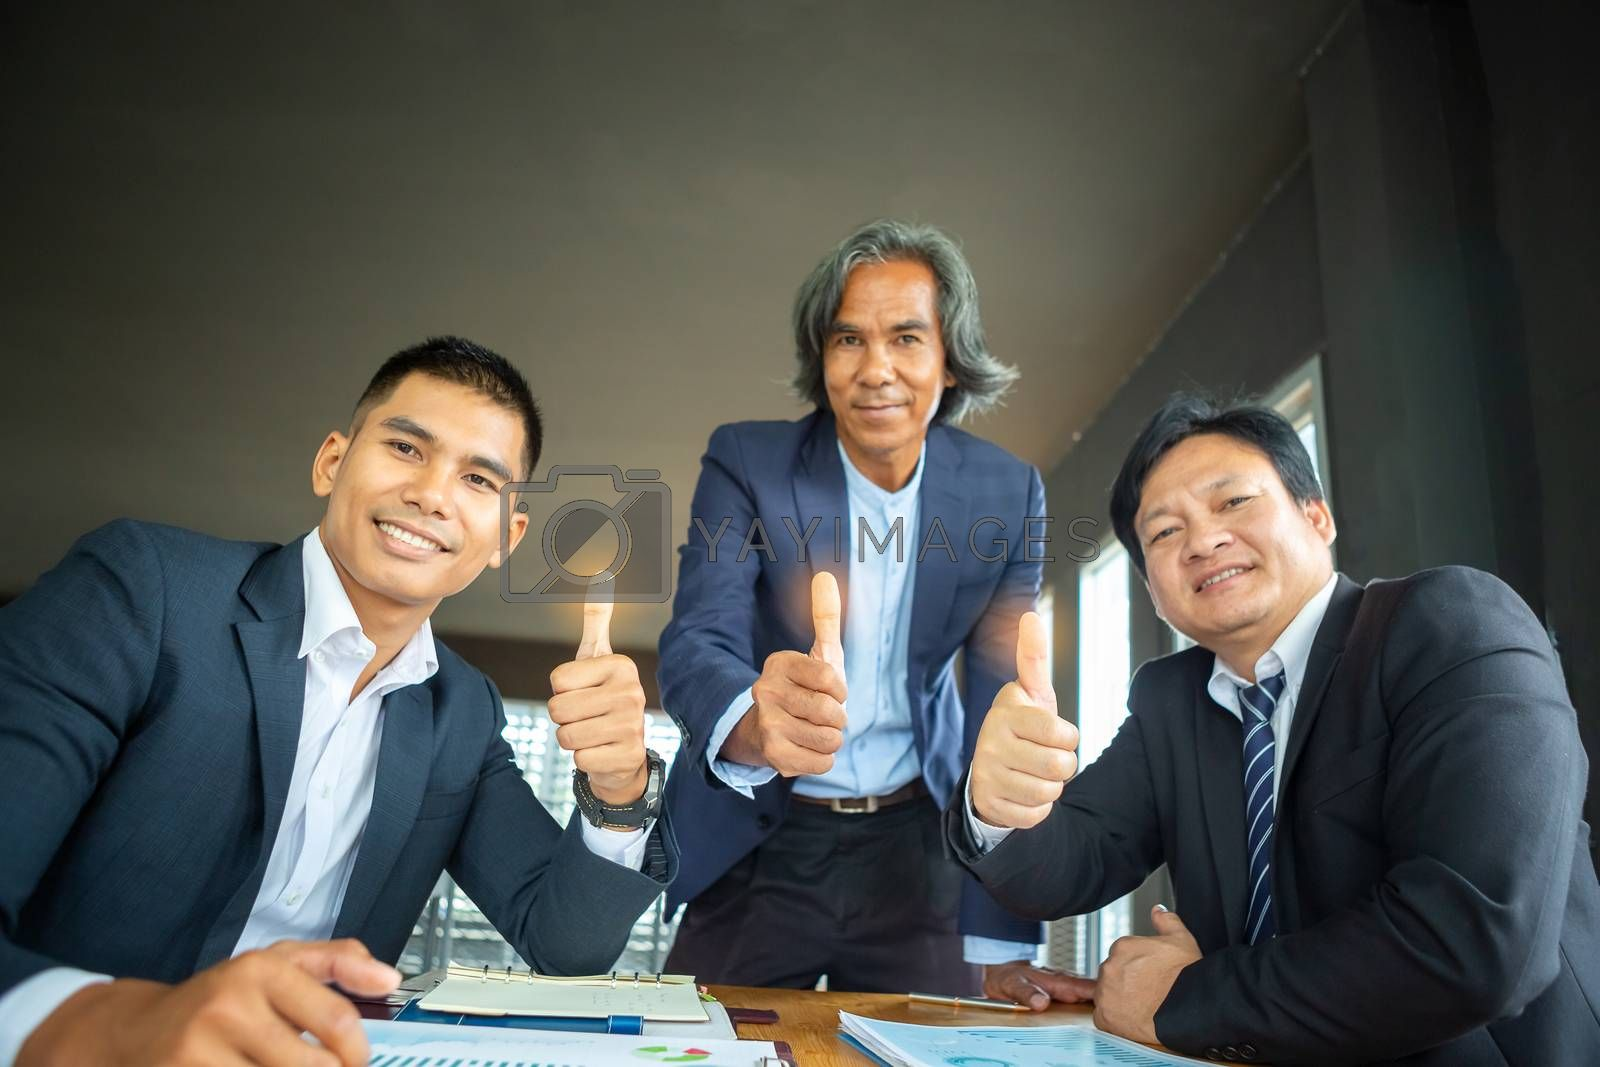 The three businessmen who thumbs up indicate the success of their business operations. Teamwork concept for development and success